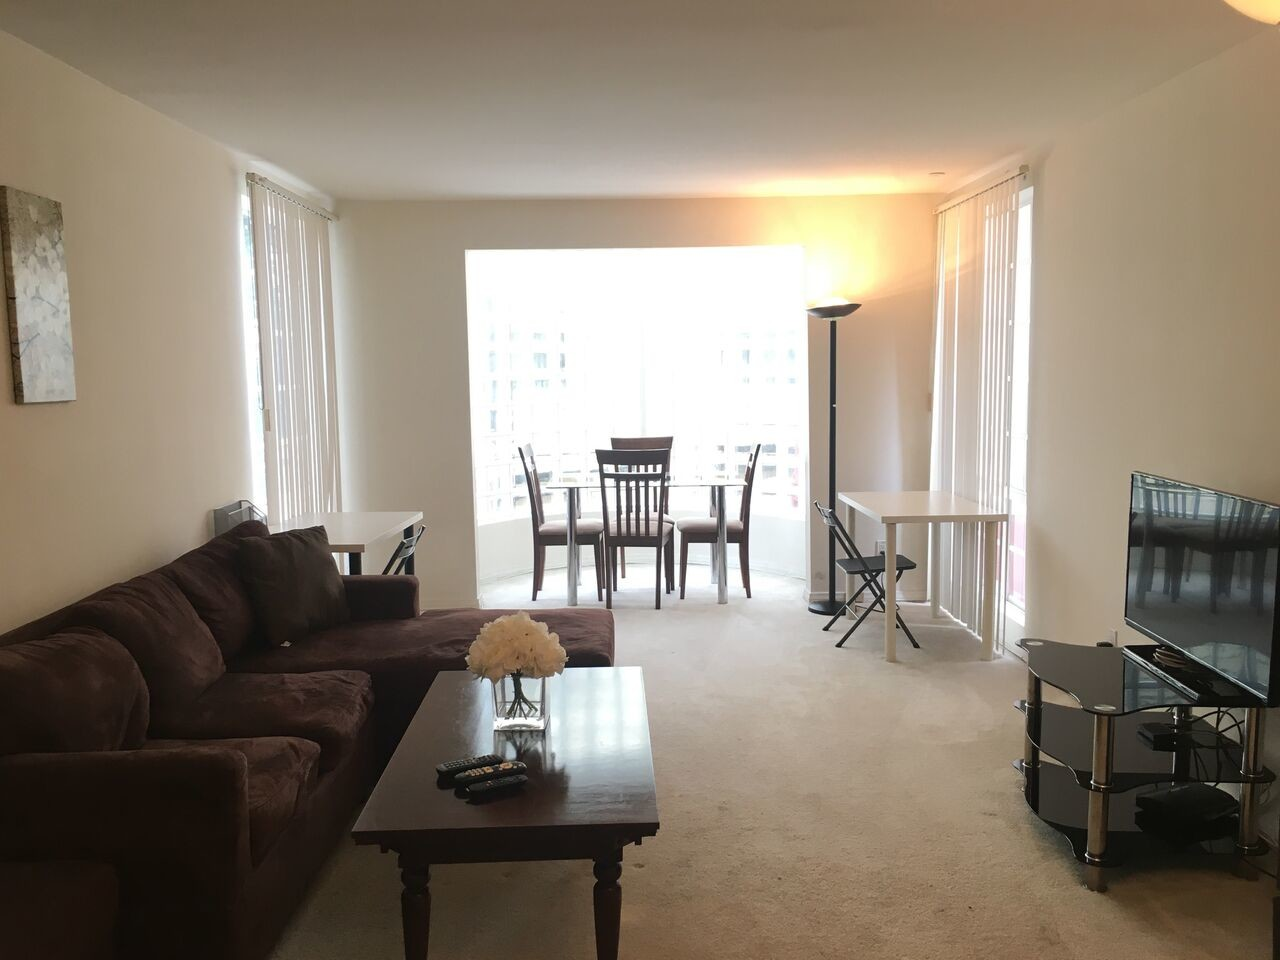 Private Room for Rent in 2Bed 2Bath Apt at Westwood Kelton Towers